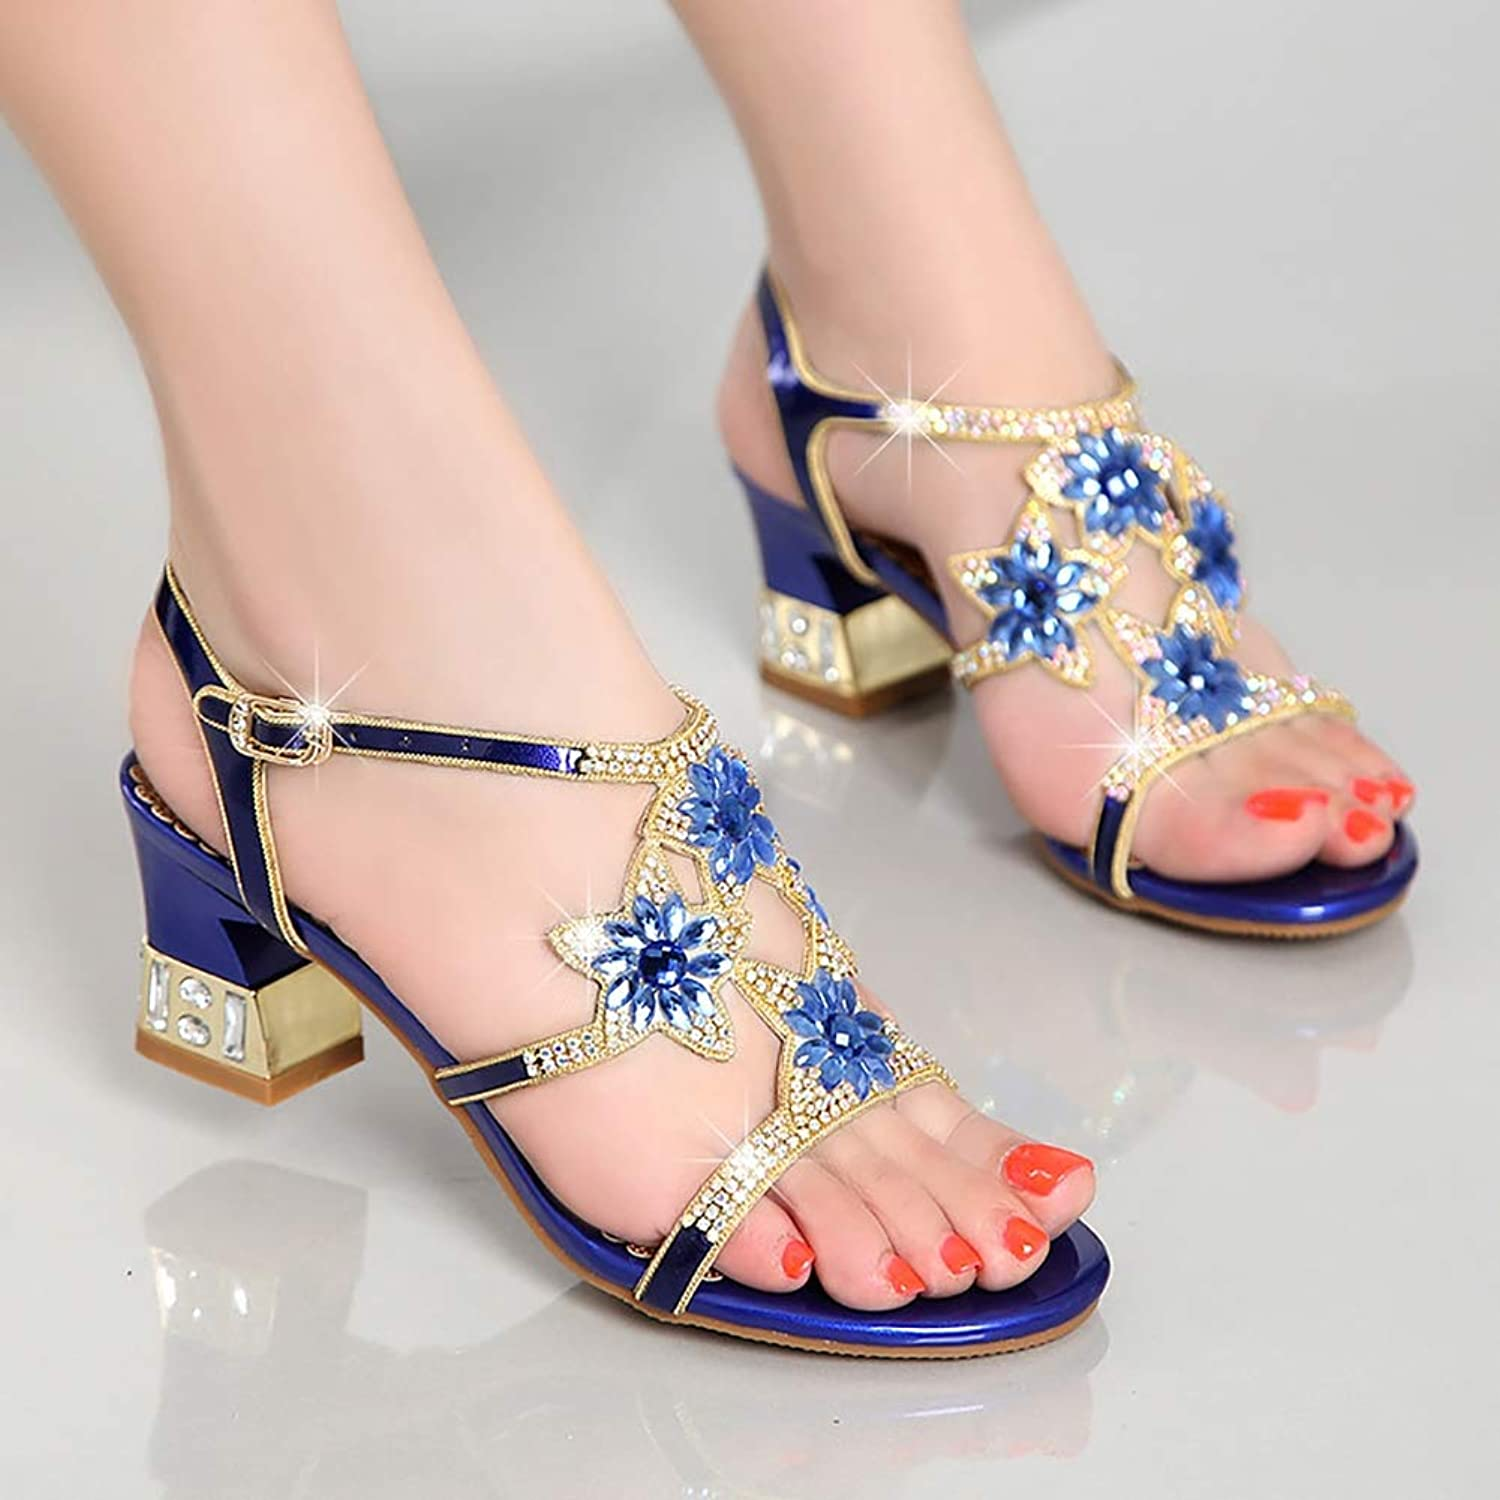 Women's Nappa Leather Glitter Summer Club shoes Sandals Chunky Heel Rhinestone gold Purple bluee Party & Evening Party & Evening